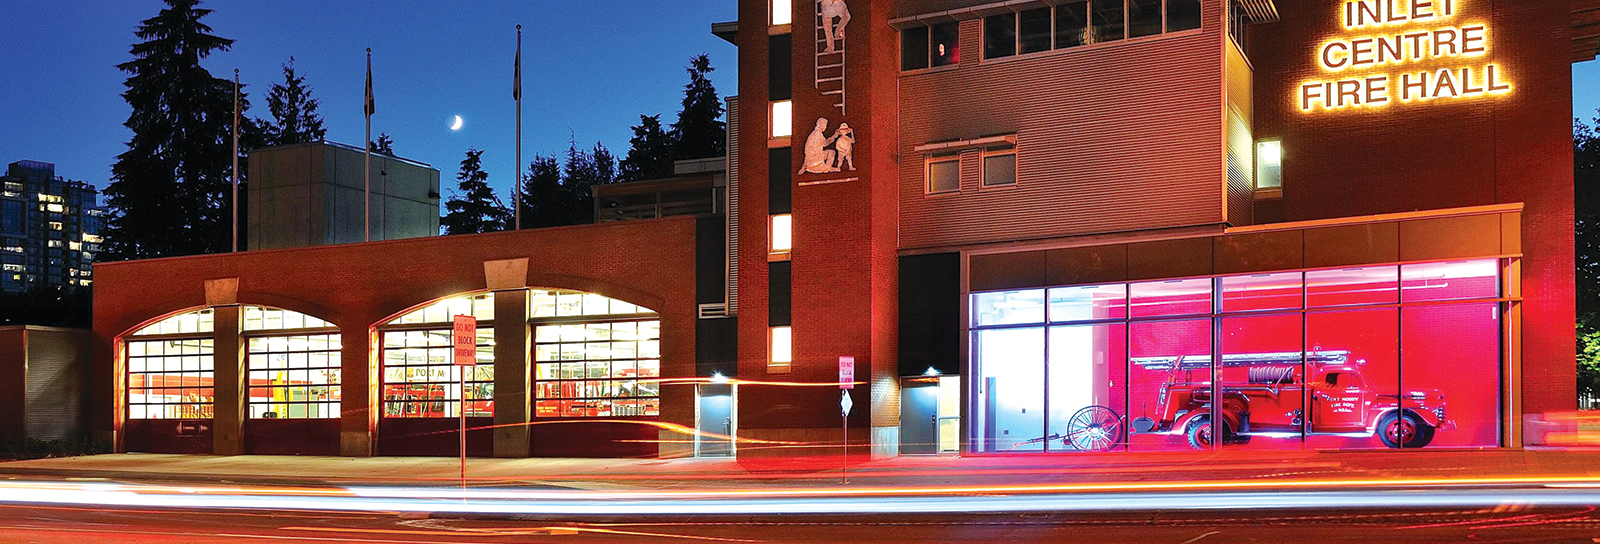 Inlet Centre Fire Hall at night